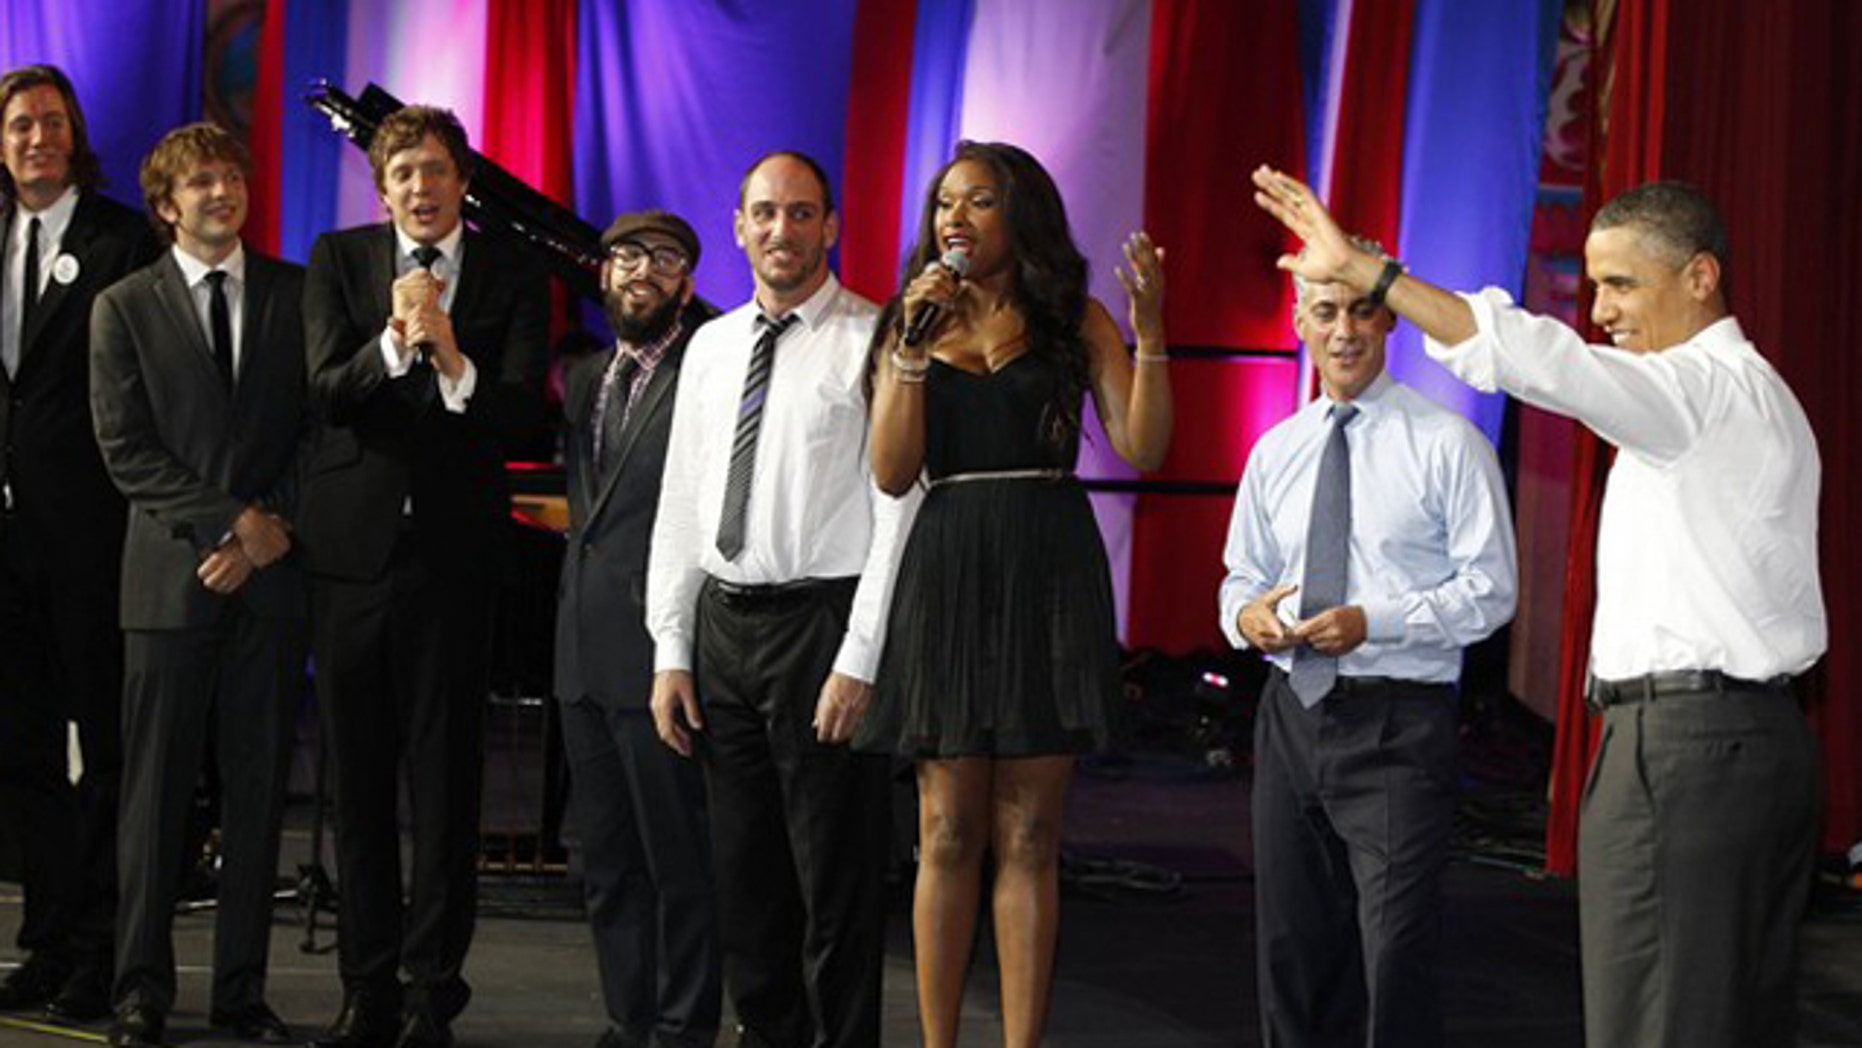 Aug. 3: U.S. President Barack Obama listens as performers, including Jennifer Hudson, sing 'Happy Birthday' to him to celebrate his 50th birthday before he delivers remarks at a Democratic National Committee fundraiser at the Aragon Entertainment Center in Chicago.